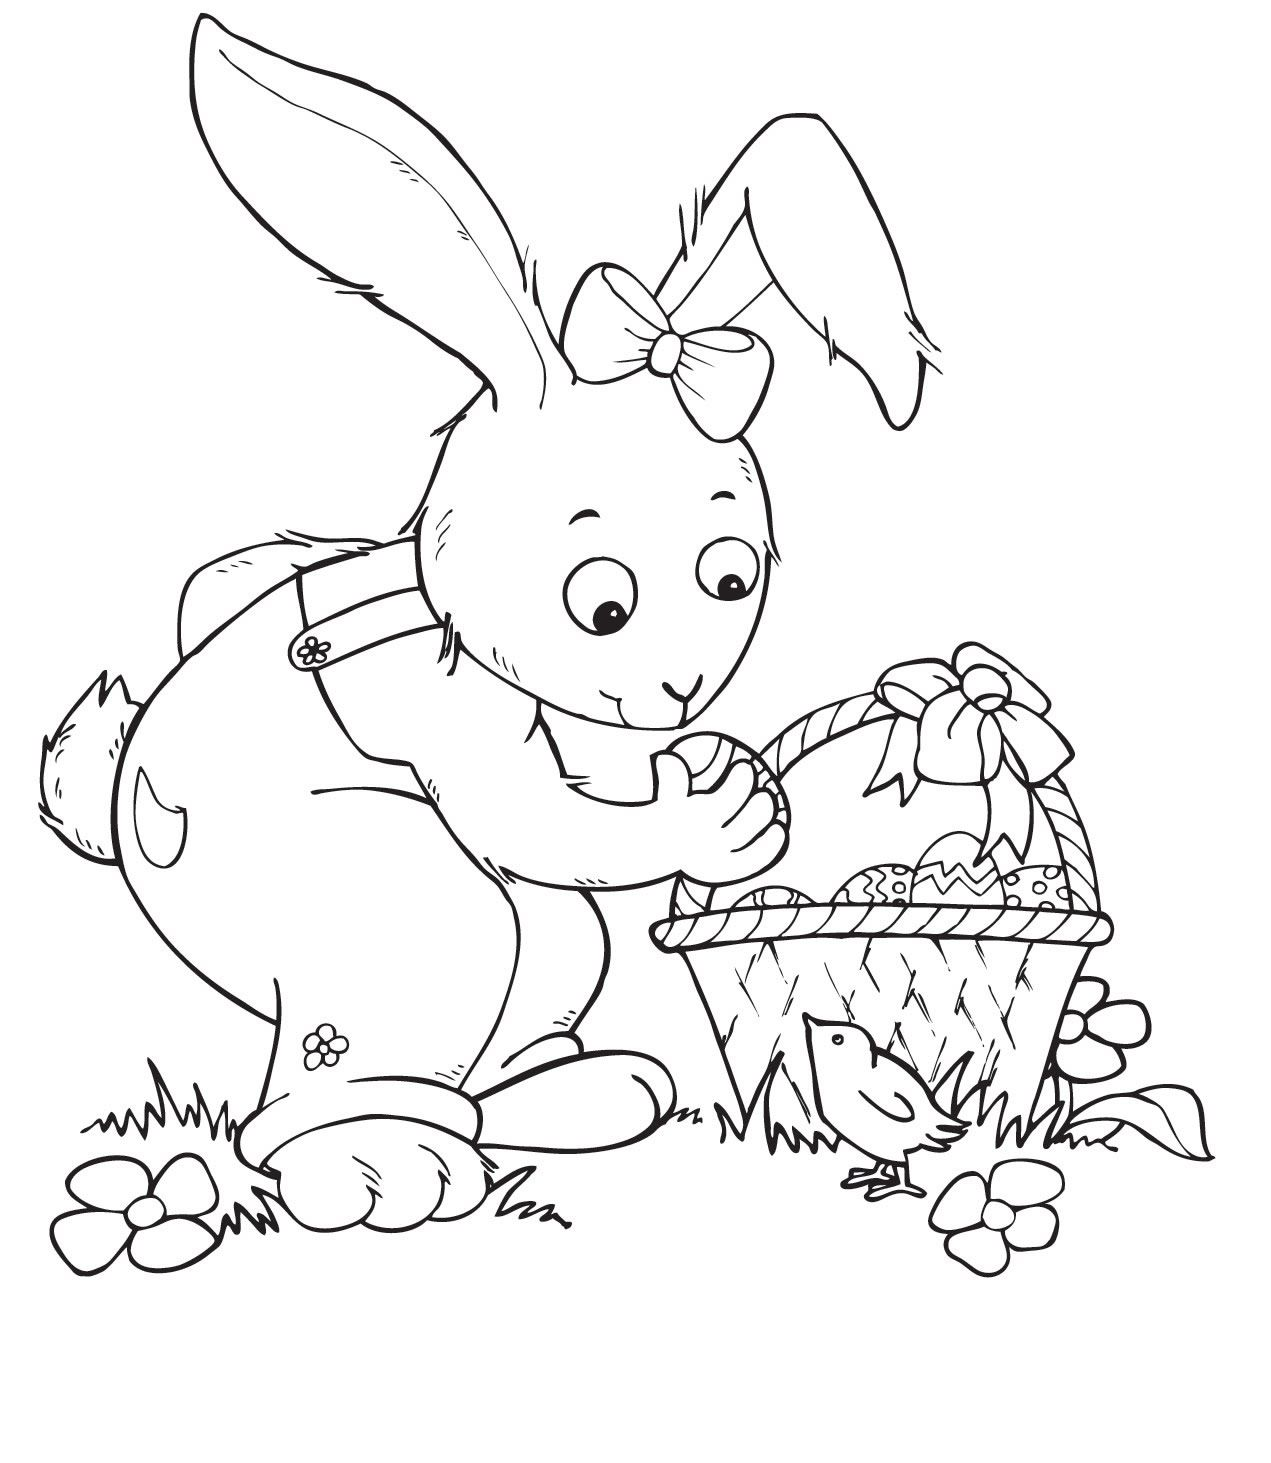 Pin by Fátima on Moldes e riscos II | Pinterest | Easter colouring ...